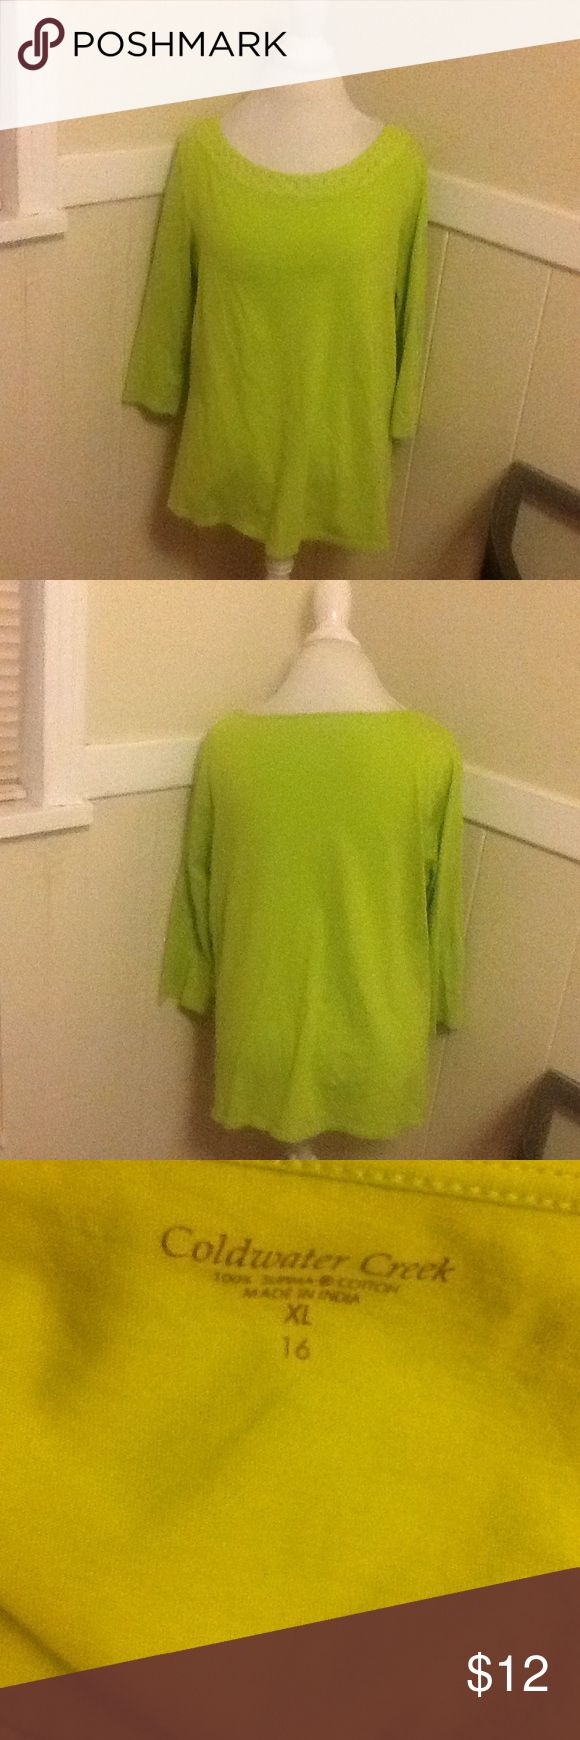 Cold water creek lime green shirt Cold water creek lime green shirt in new condition Coldwater Creek Tops Blouses